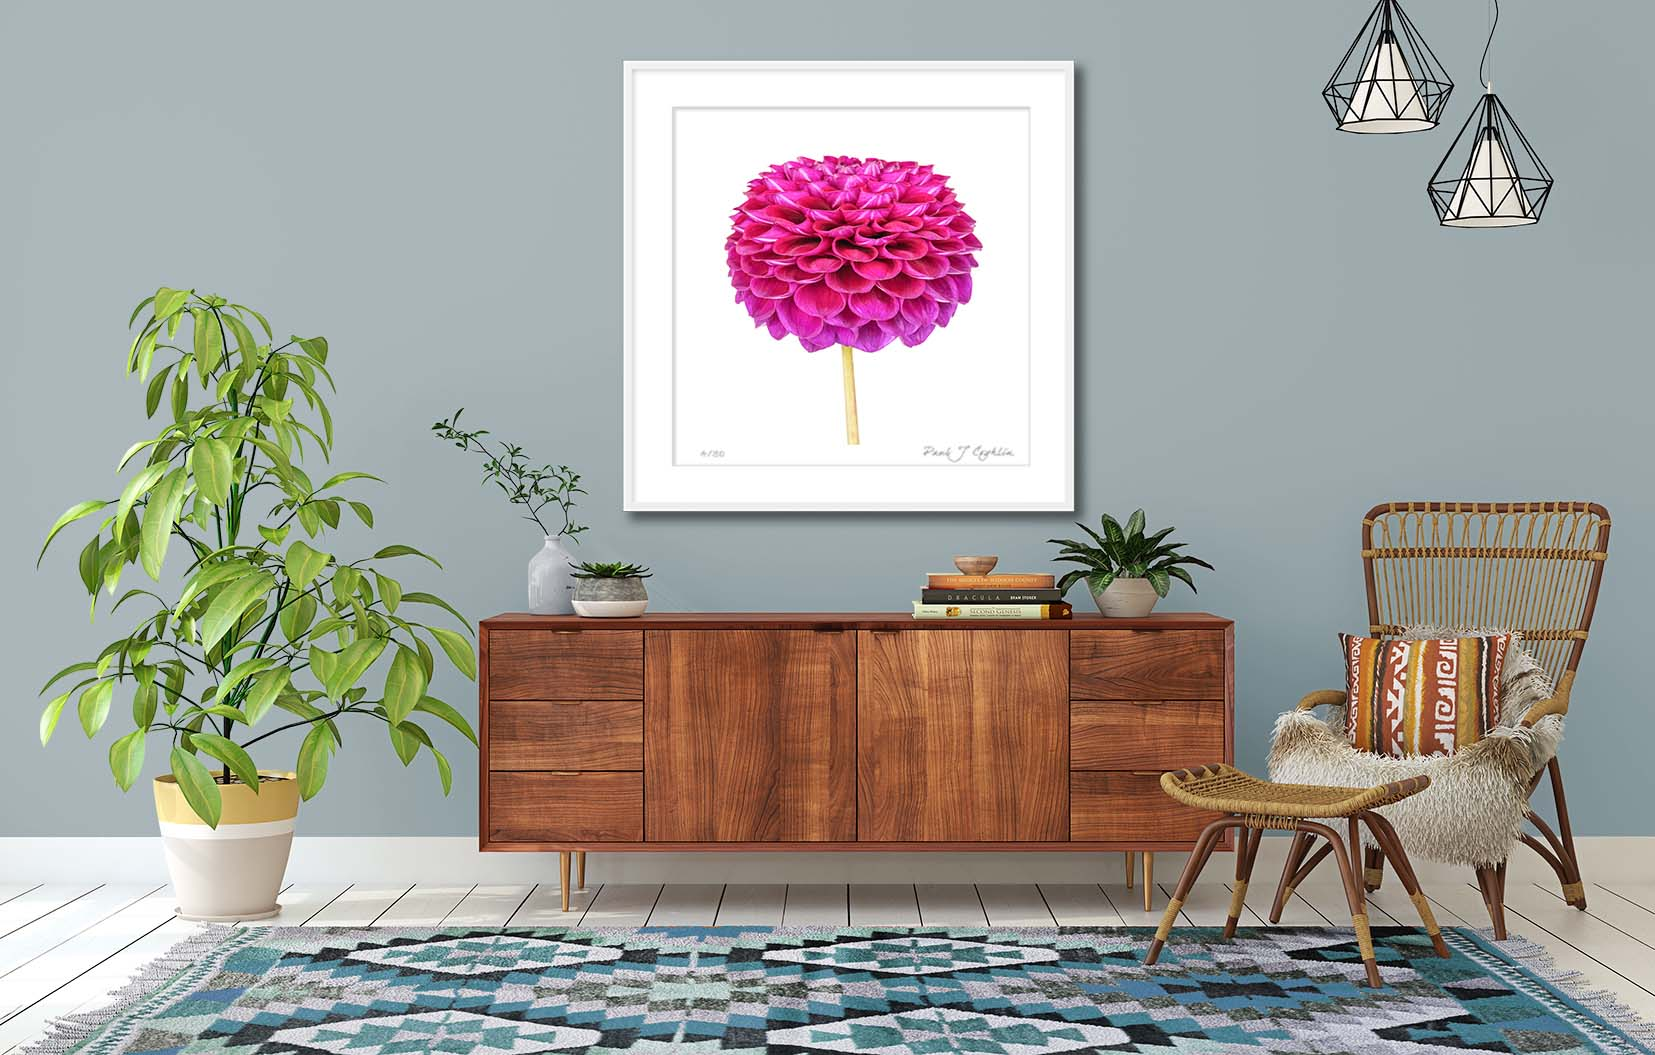 Dahlia 'Downham Royal'. Colour limited edition print of a purple dahlia by fine art photographer Paul Coghlin FBIPP